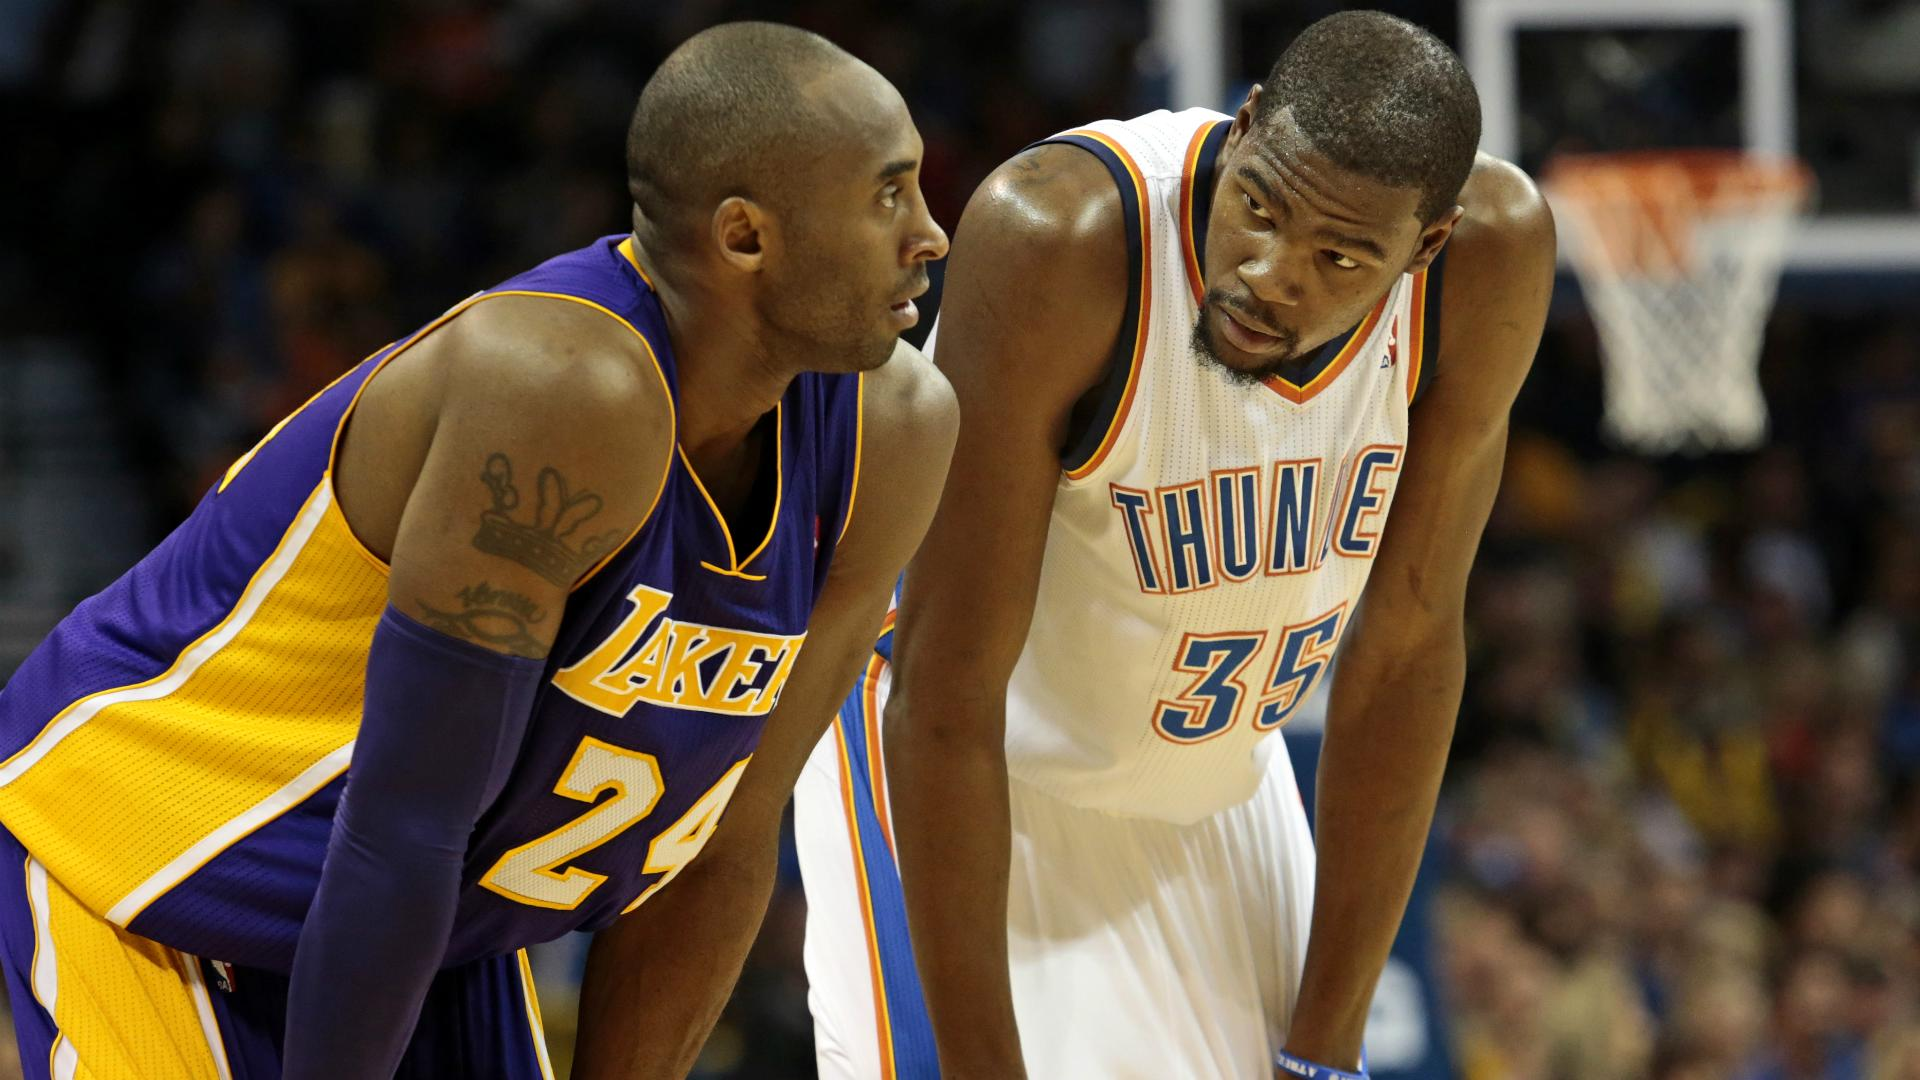 Durant hits out at media: You guys have treated Bryant like s***